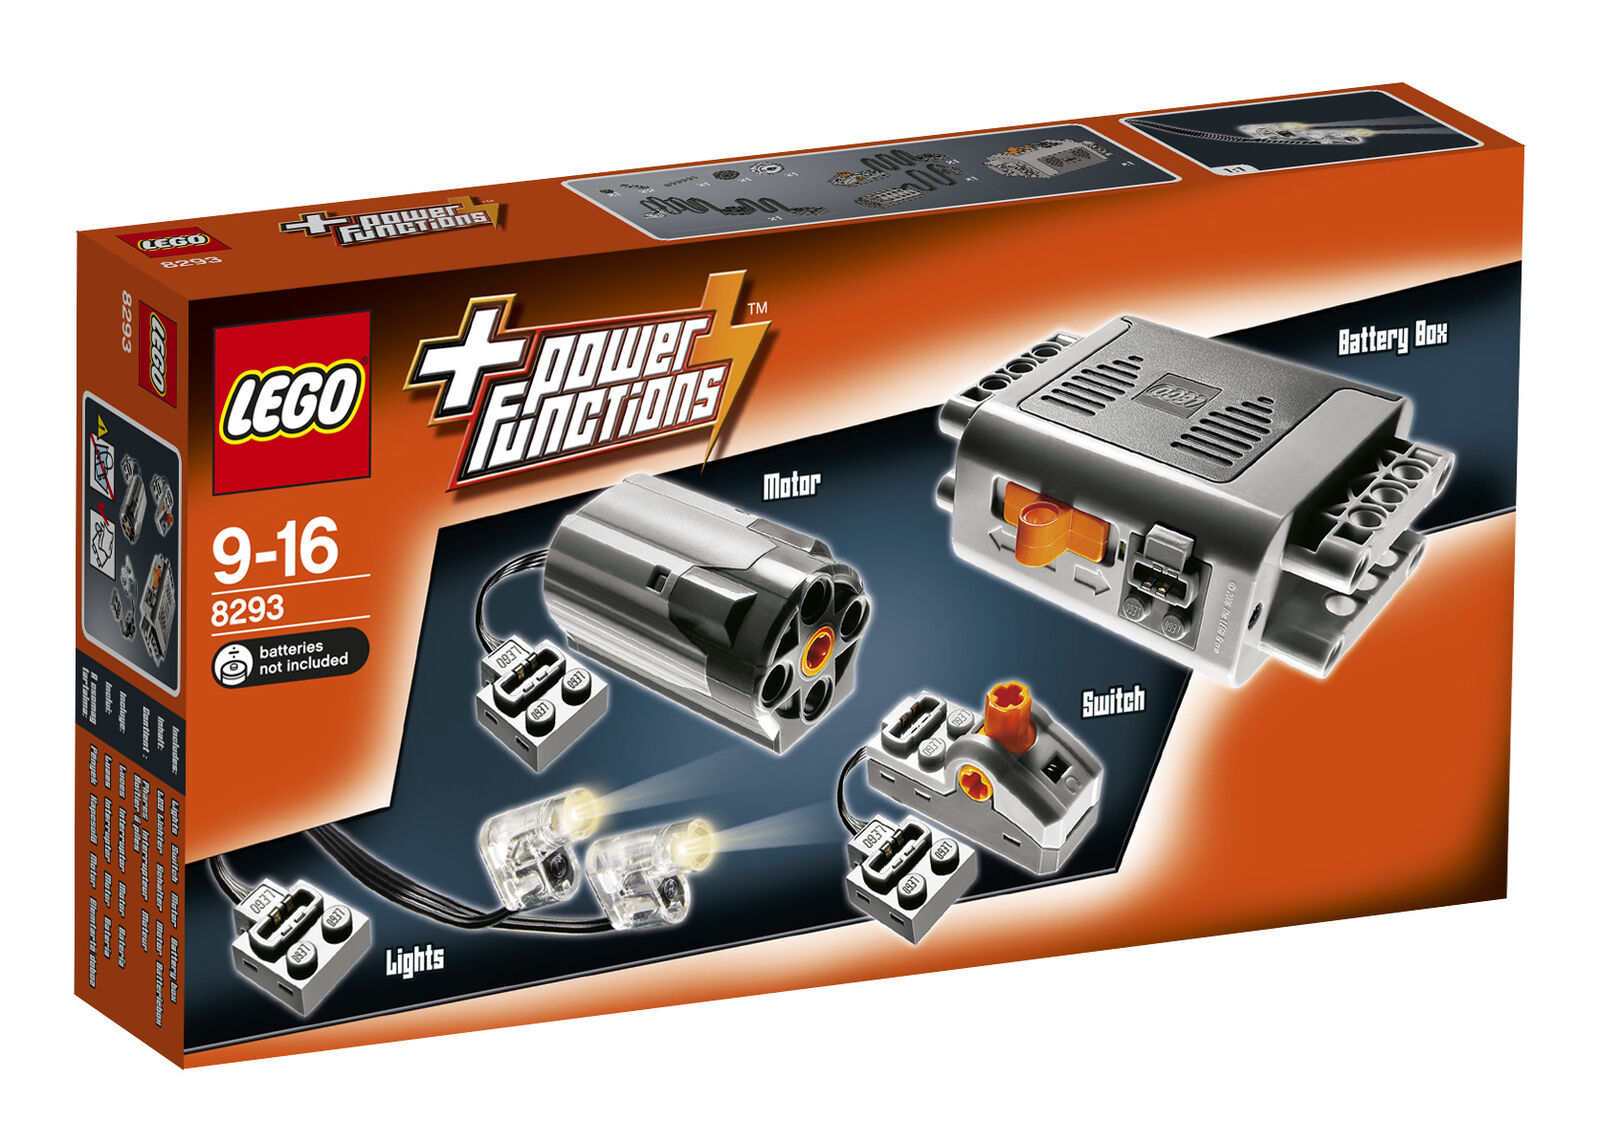 LEGO 8293 Technic Power Functions Motor Set